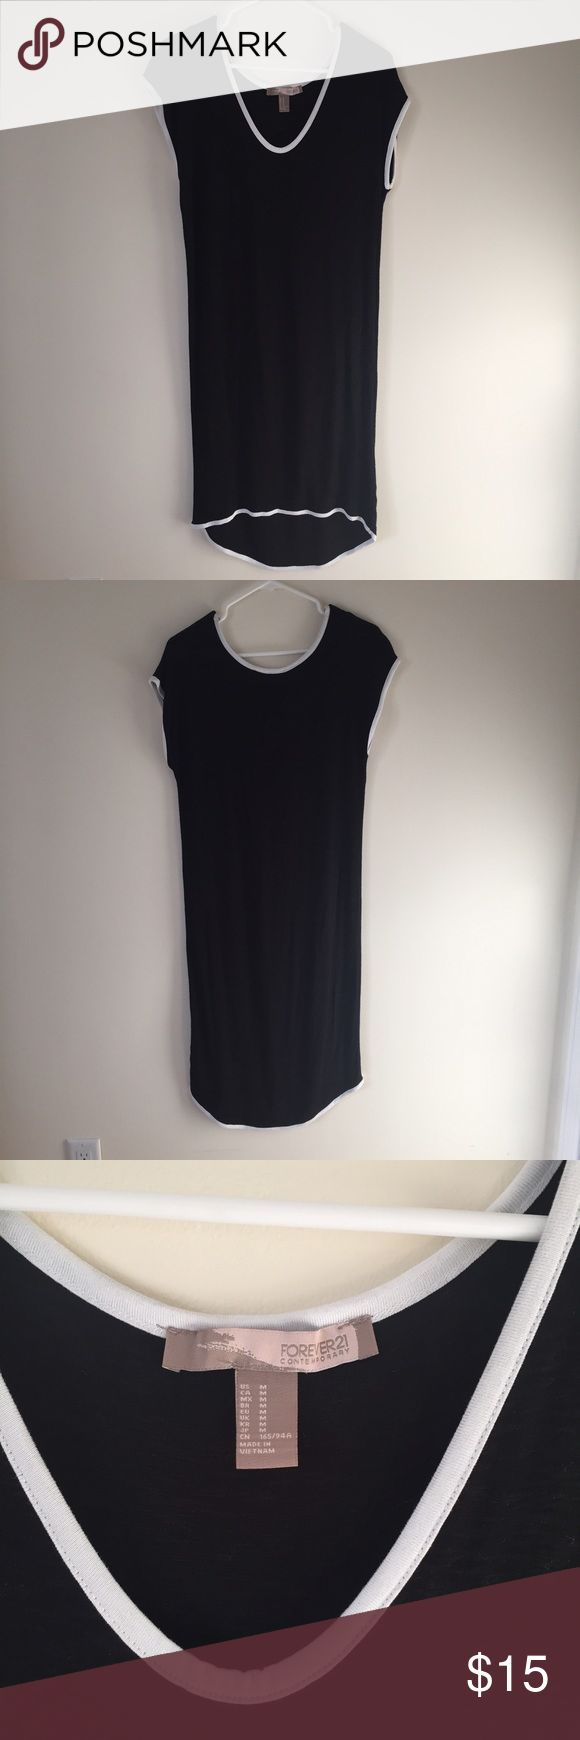 """Black sporty midi t-shirt dress Forever 21 Contemporary. Black with white piping. Casual and comfortable. Only worn once. Front comes down to my knees, the back is a little longer (I'm 5'6""""). Really cute with sneakers, and great for layering. Only worn once, in perfect condition!!! Make me an offer 😊💜 Forever 21 Dresses Midi"""